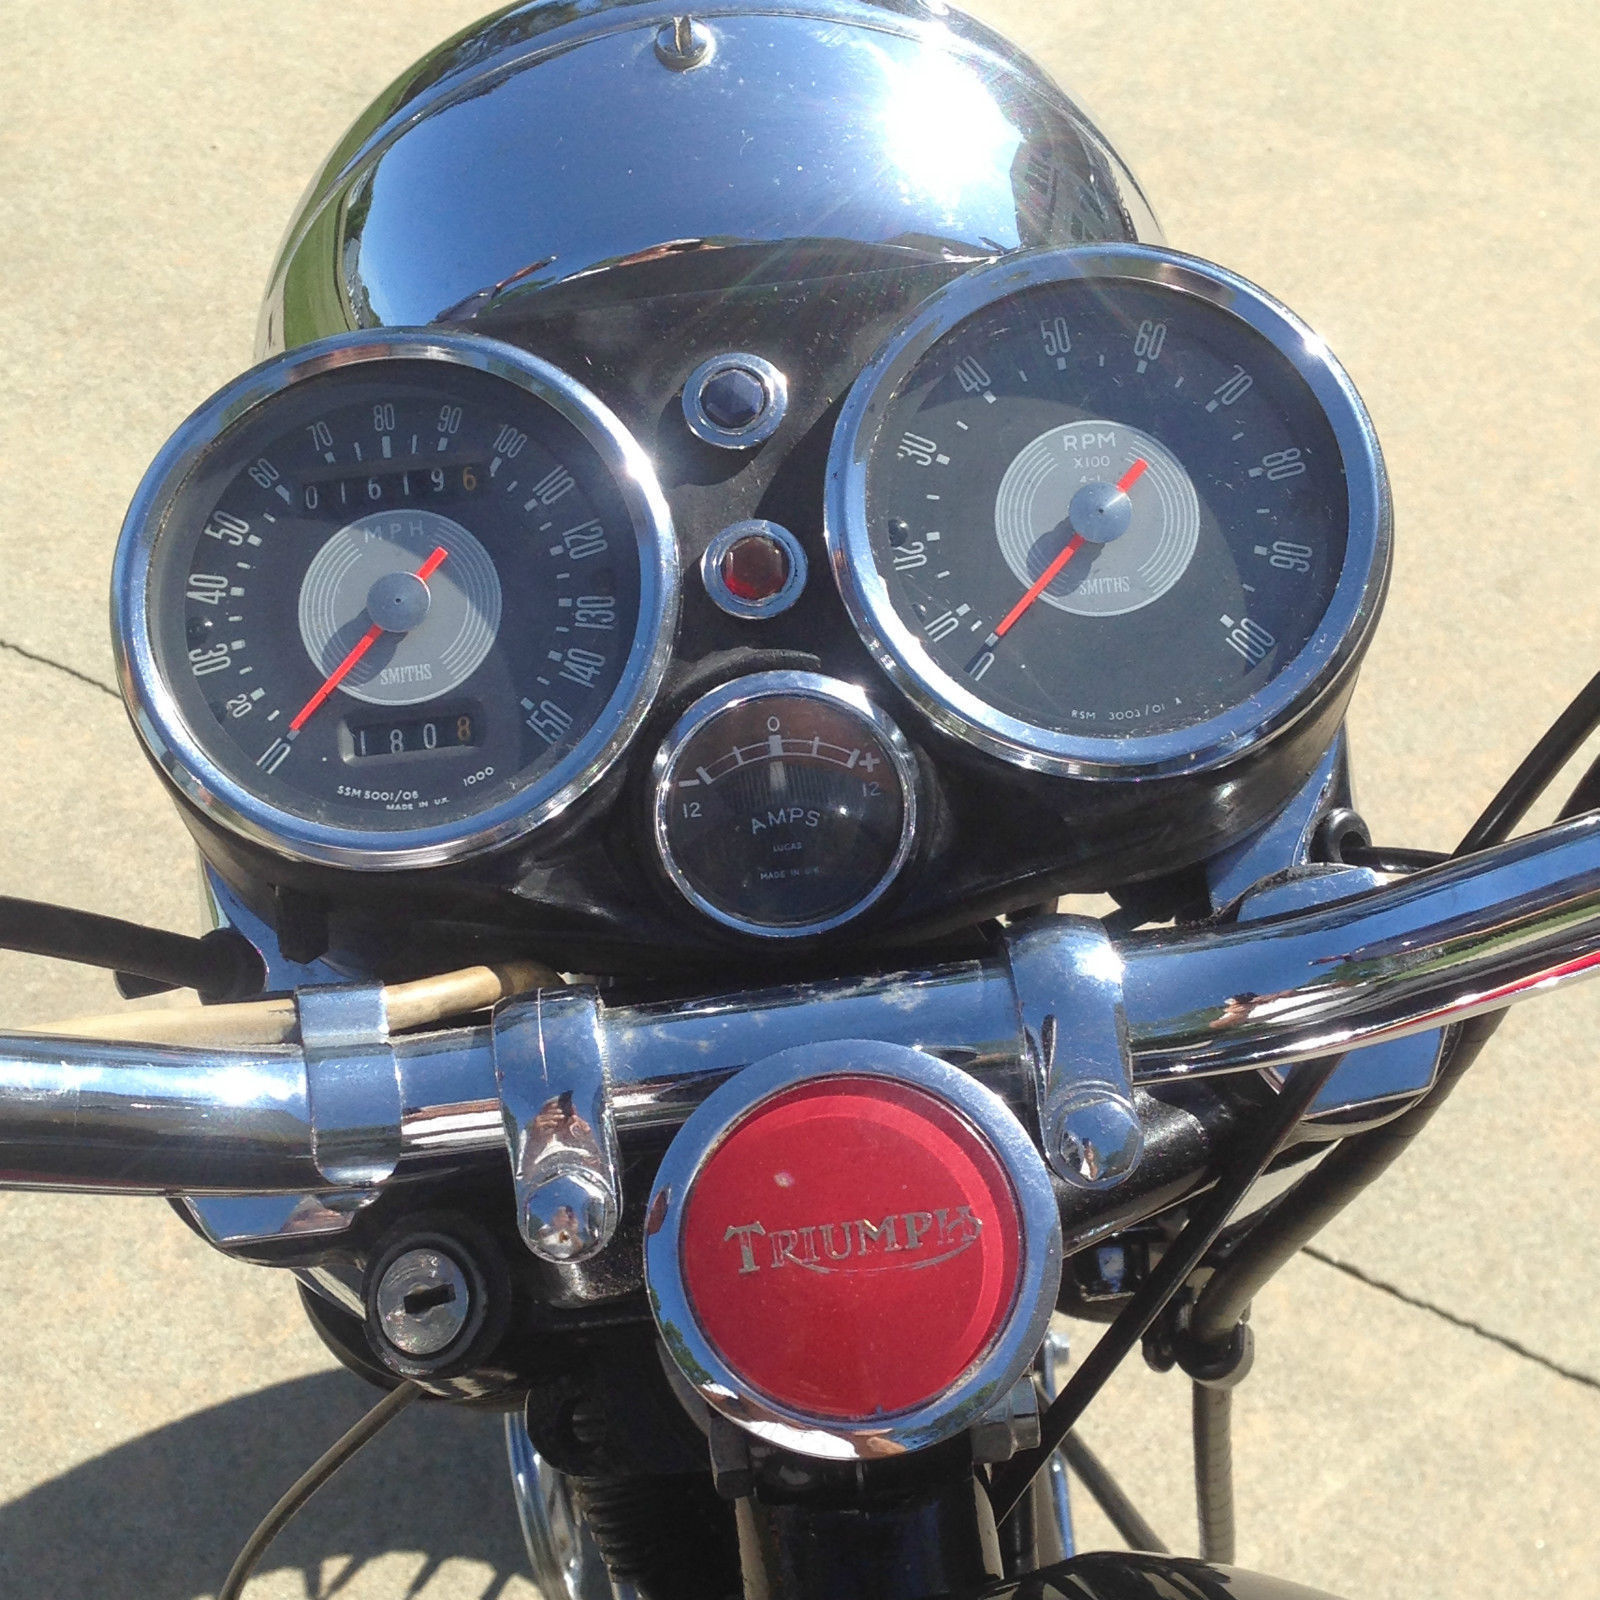 The speedometer of the Triumph Trident suggests that this is a motorcycle that can get awfully close to the speed of a Jaguar XKE. (Picture courtesy eBay).